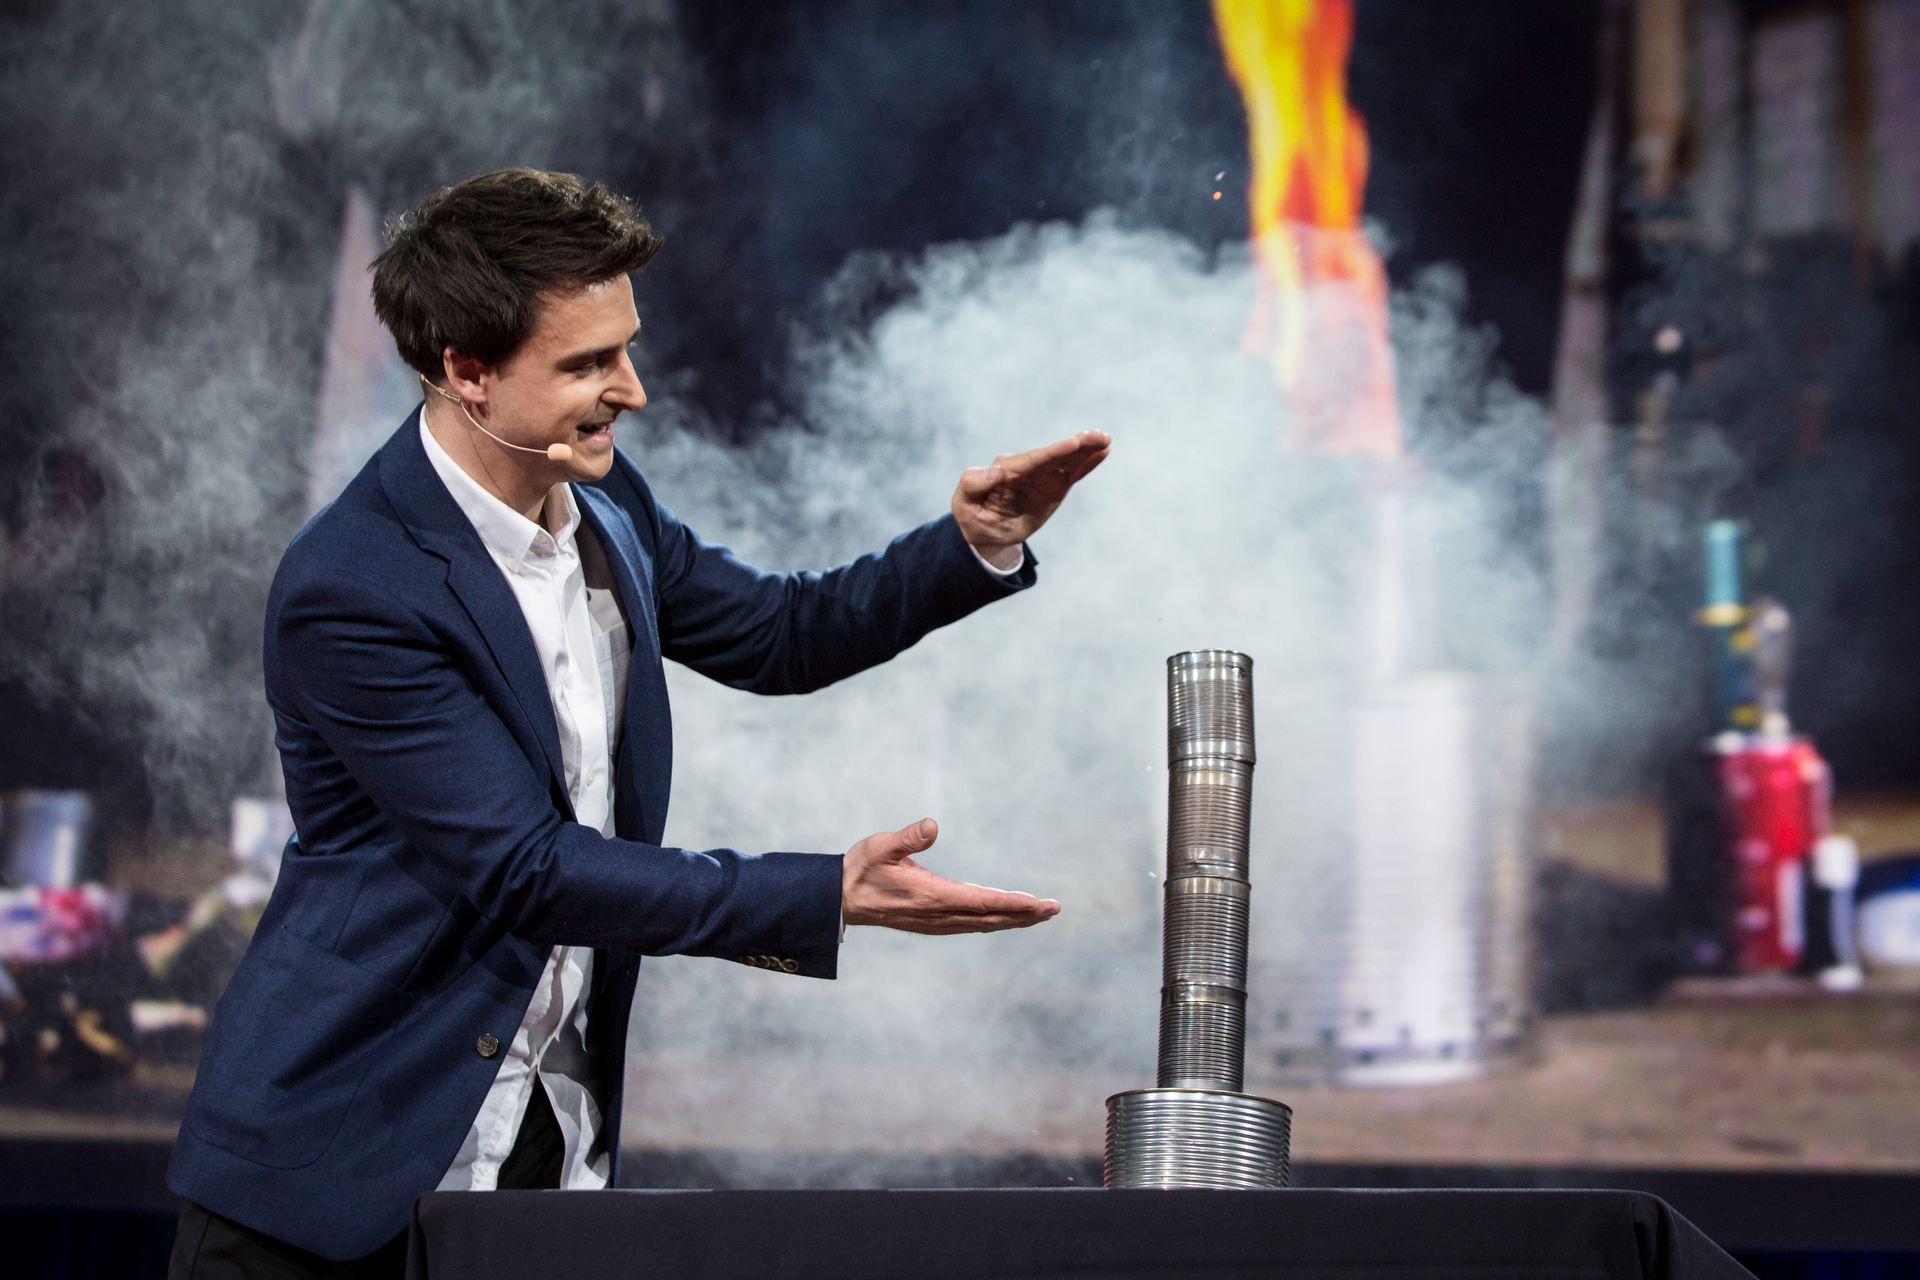 """Lewis Dartnell shows his """"gasifier stove,"""" which could help society rebuild after an apocalypse. Read more about his talk. Photo: Bret Hartman/TED http://blog.ted.com/how-to-rebuild-our-world-from-scratch-using-science-lewis-dartnell-at-ted2015/"""